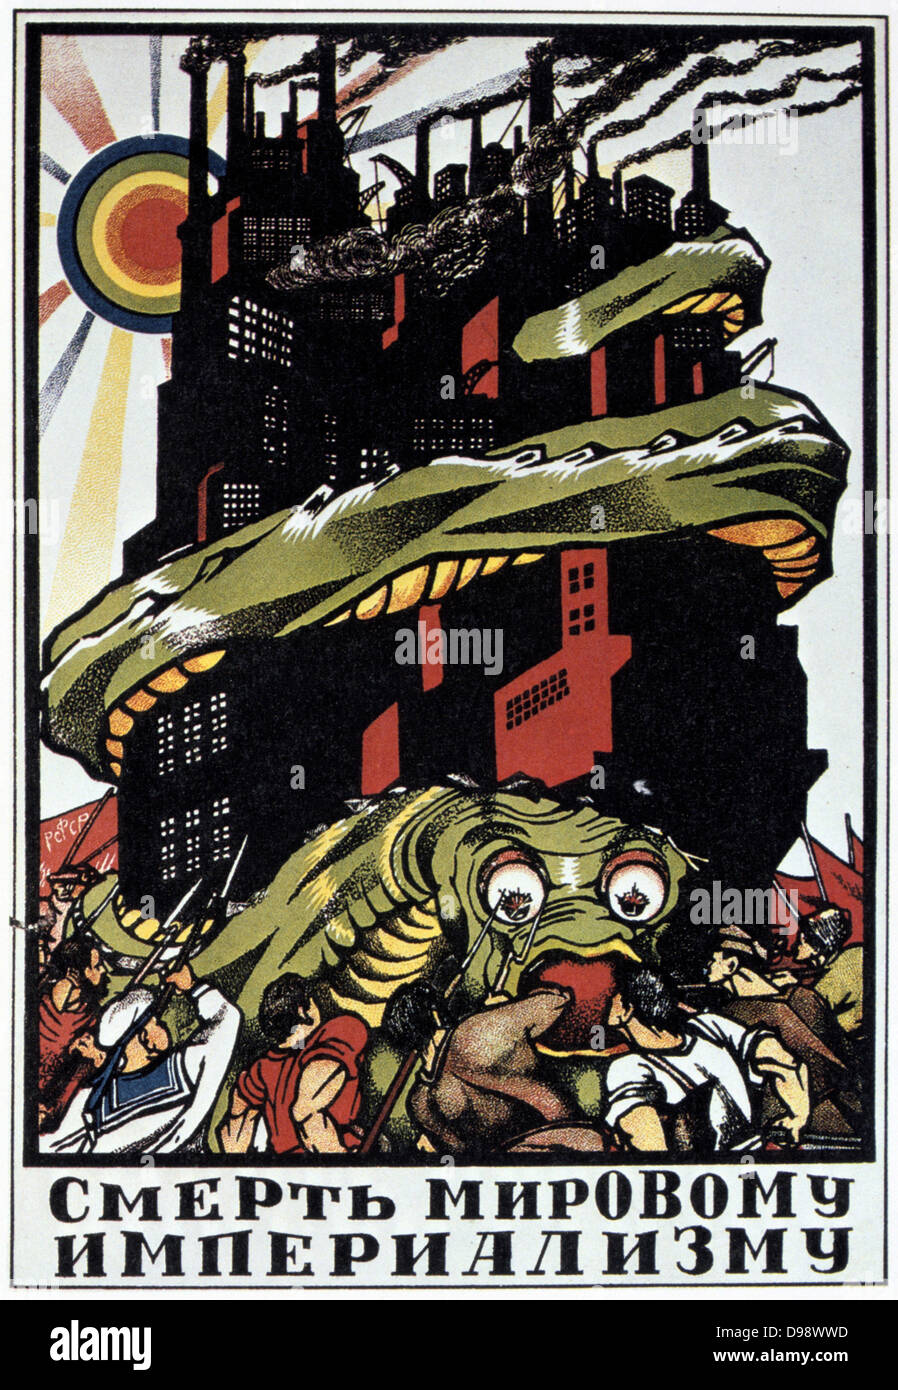 Death to the World Imperialist Monster', 1919. Soviet propaganda poster by Dmitry Moor (Orlov). Russia USSR - Stock Image